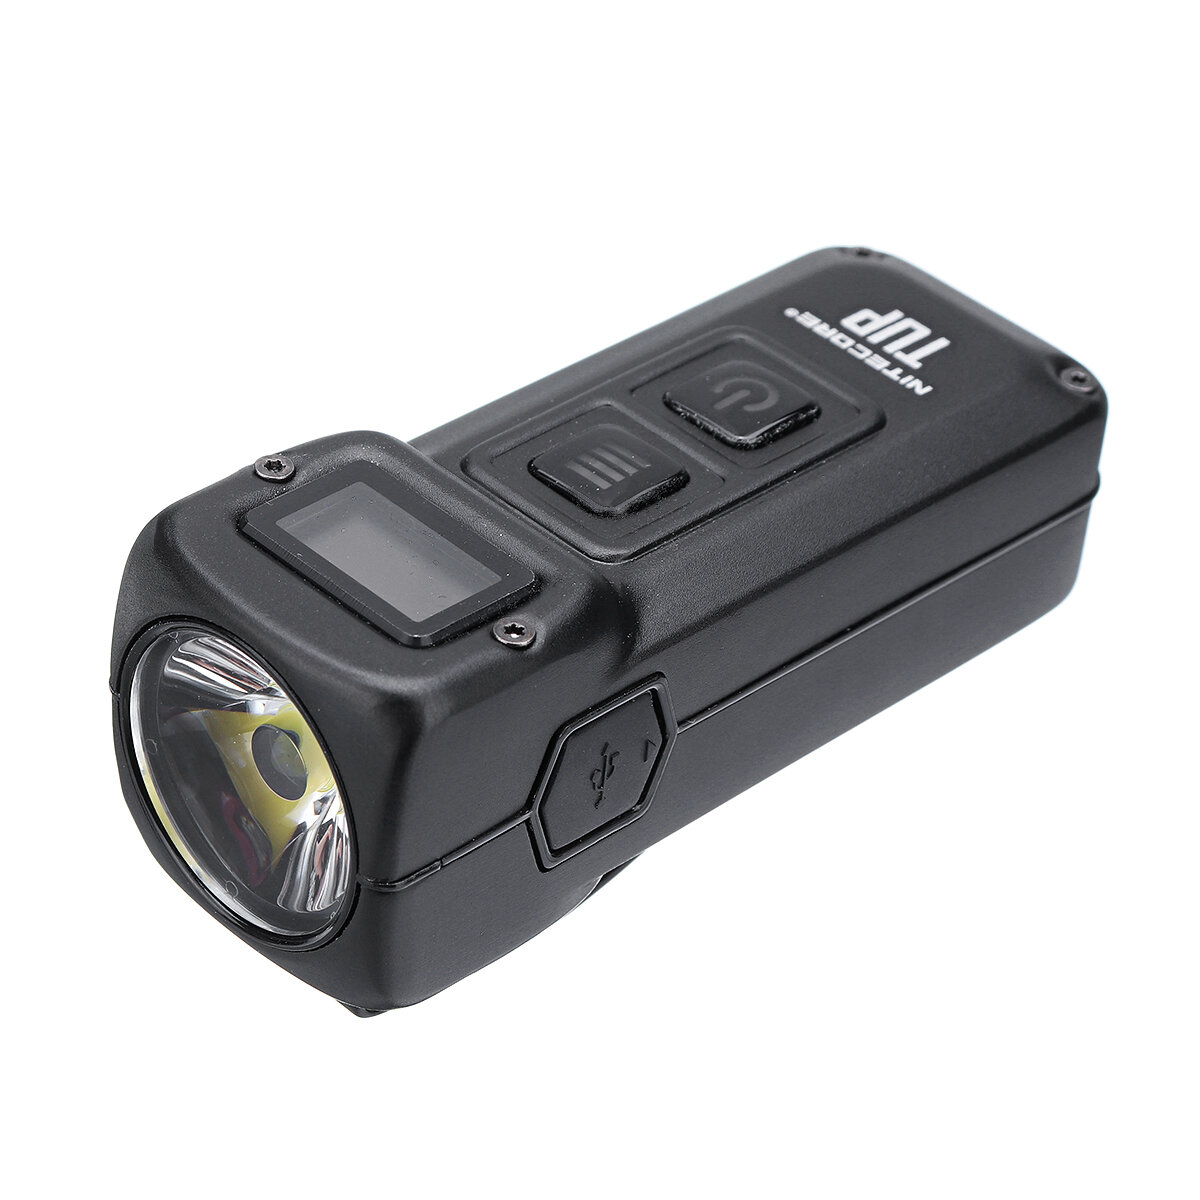 Nitecore VCL10 Quick Charge 3.0 USB Car Charger With White + Red Light Flashlight - 1